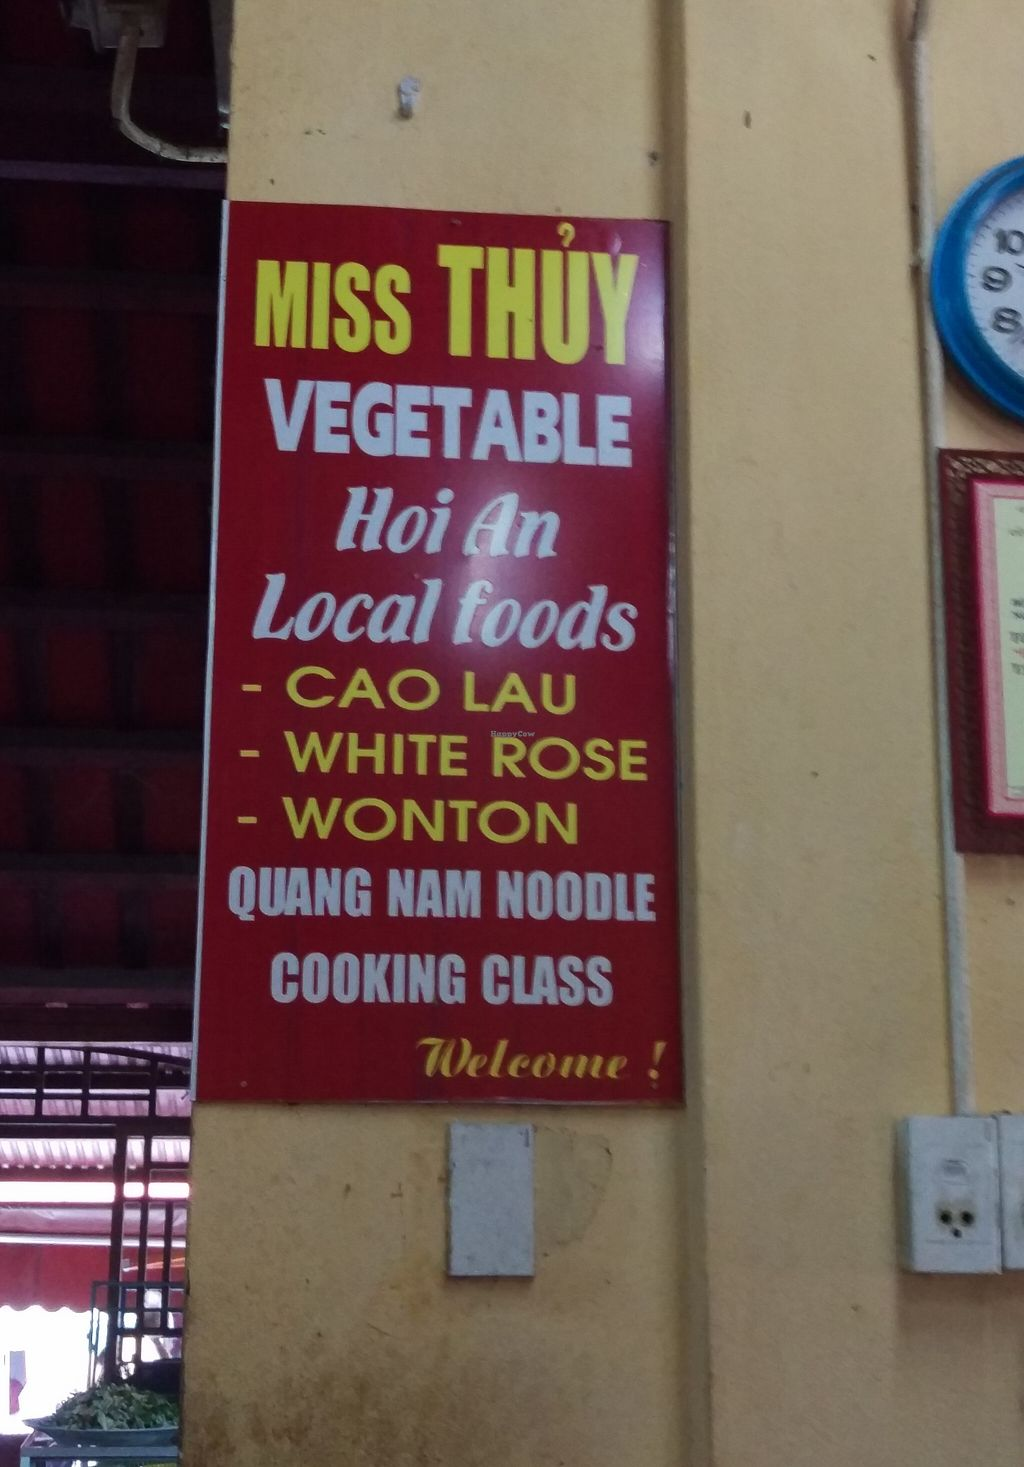 "Photo of Miss Thuy Vegetables - Food Stall  by <a href=""/members/profile/plottwisted"">plottwisted</a> <br/> September 13, 2015  - <a href='/contact/abuse/image/63326/117516'>Report</a>"